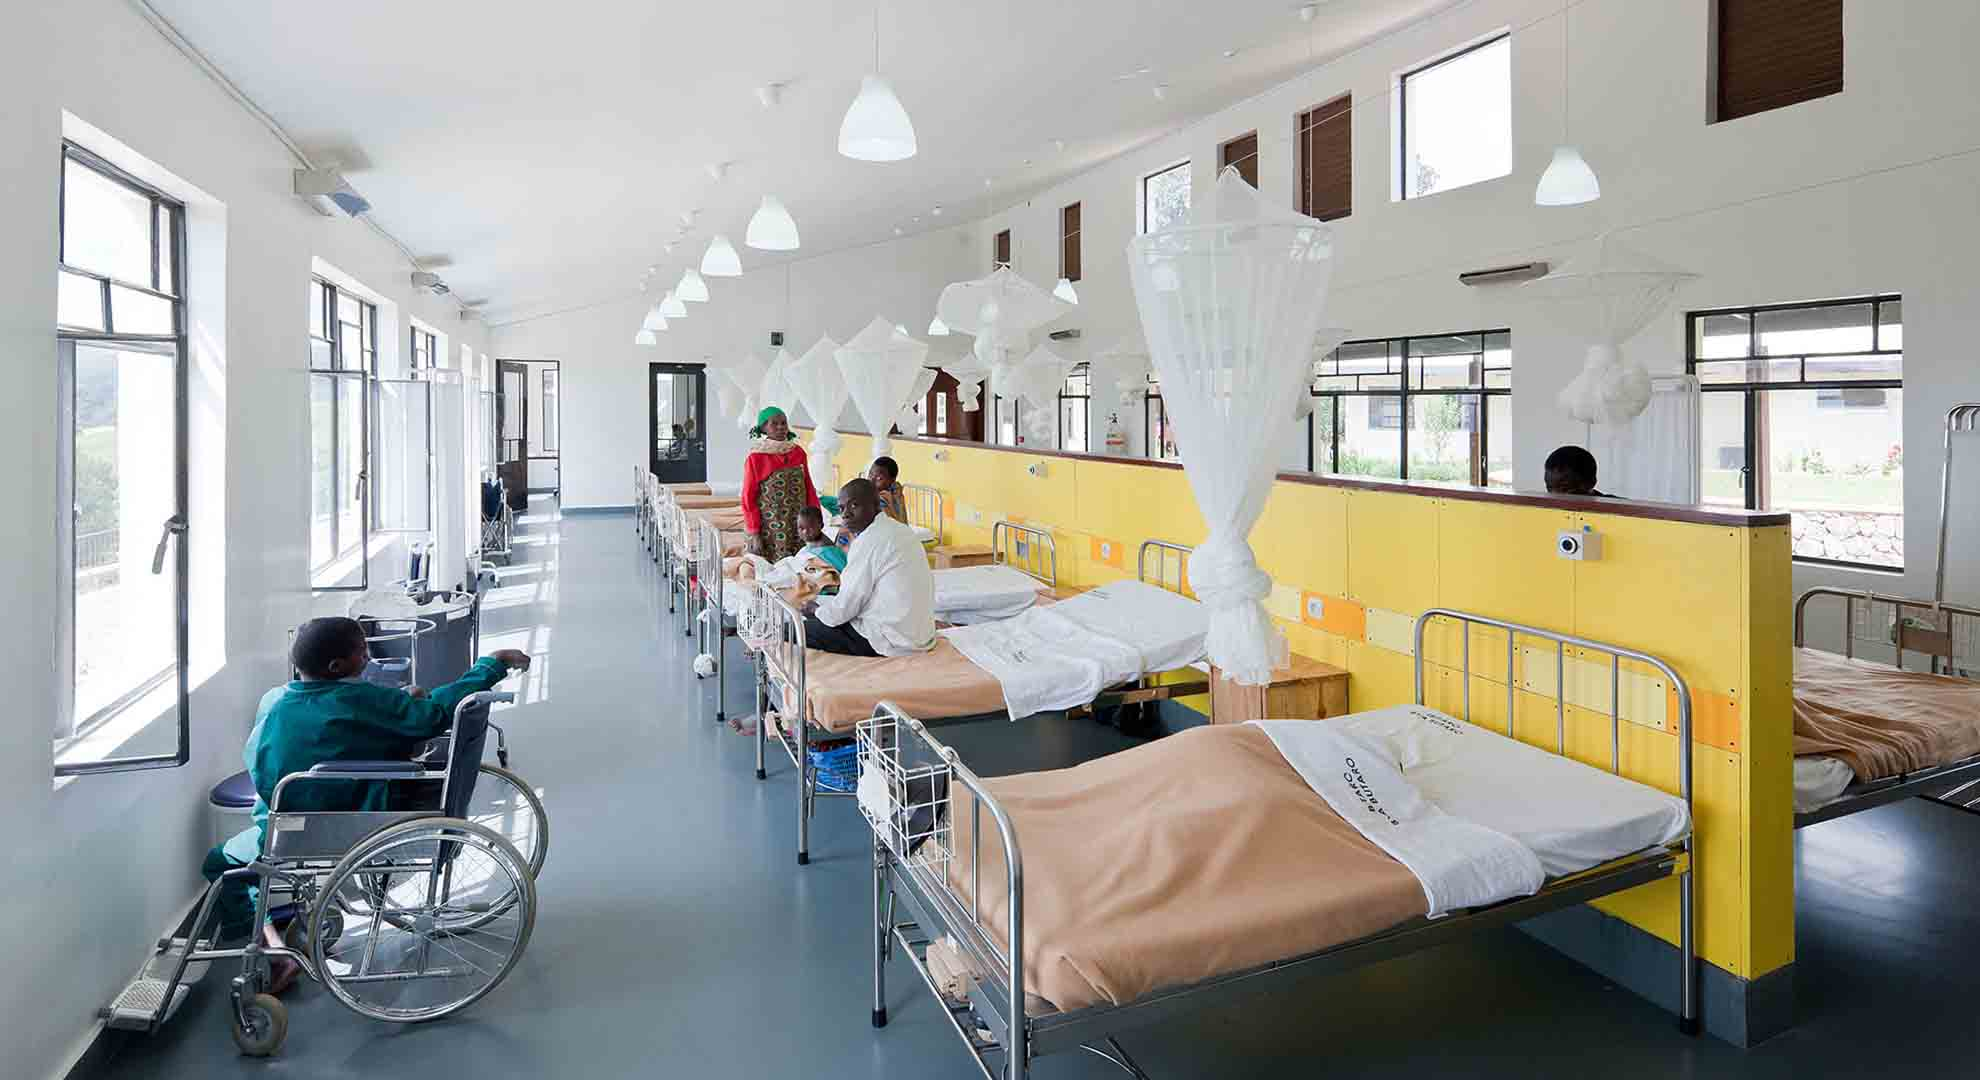 Hospital design in Rwanda helps to mitigate and reduce the transmissions of airborne disease